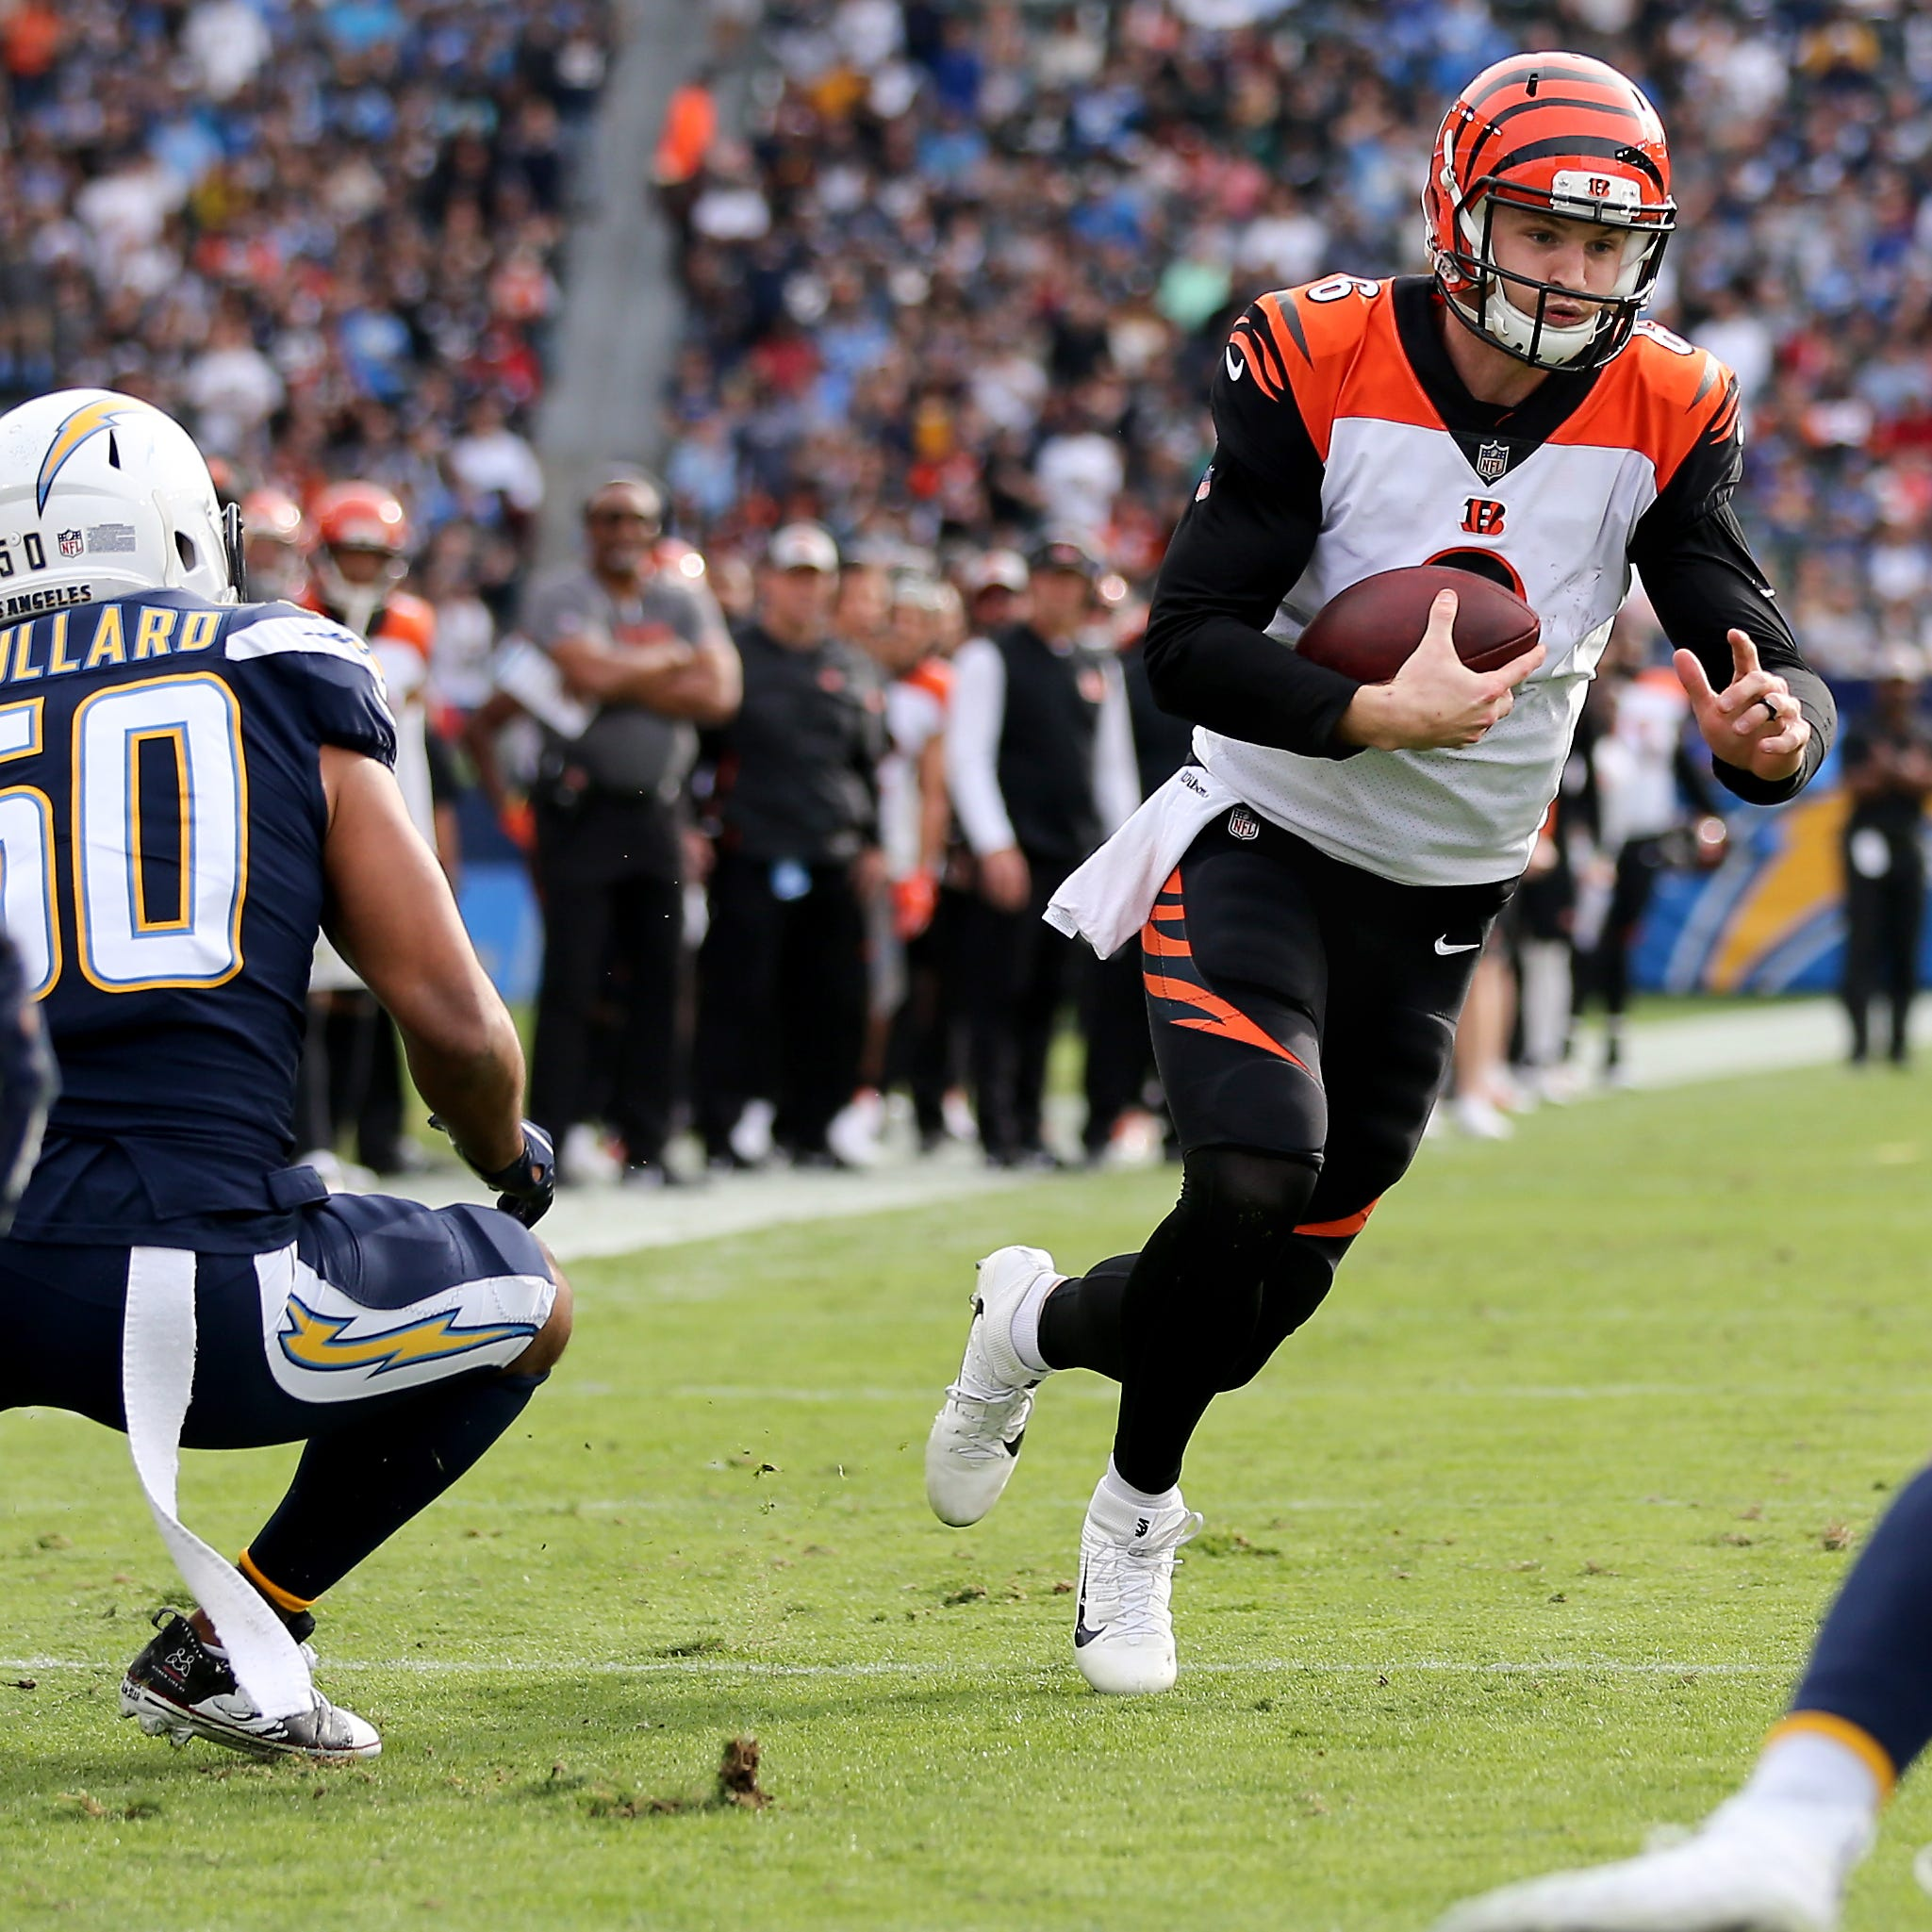 Rule change negated Jeff Driskel TD in Cincinnati Bengals loss to Los Angeles Chargers